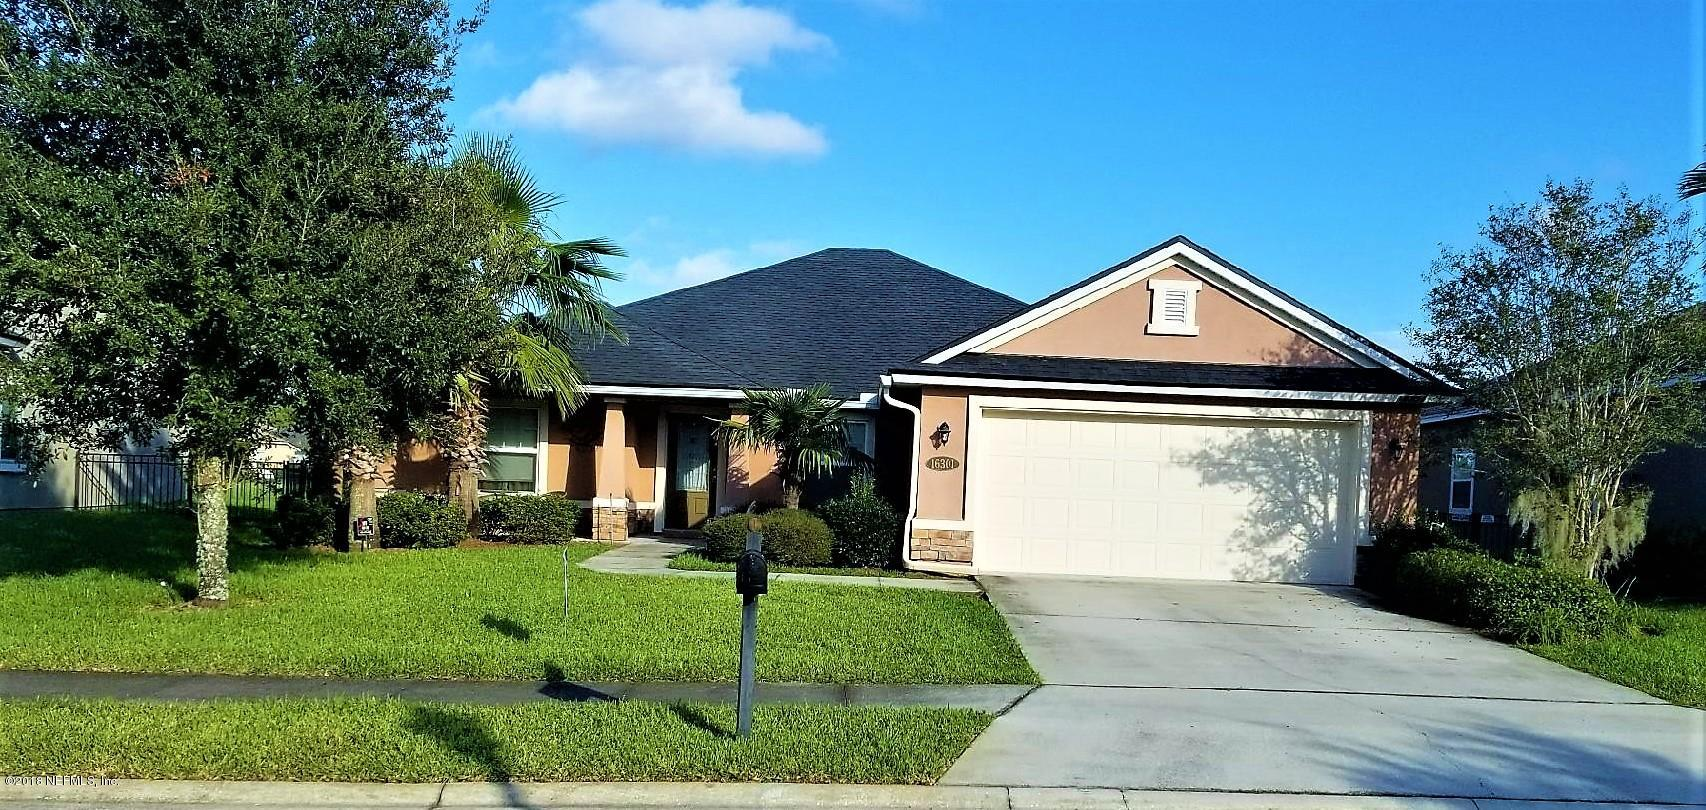 16301 TISONS BLUFF, JACKSONVILLE, FLORIDA 32218, 4 Bedrooms Bedrooms, ,2 BathroomsBathrooms,Residential - single family,For sale,TISONS BLUFF,959373